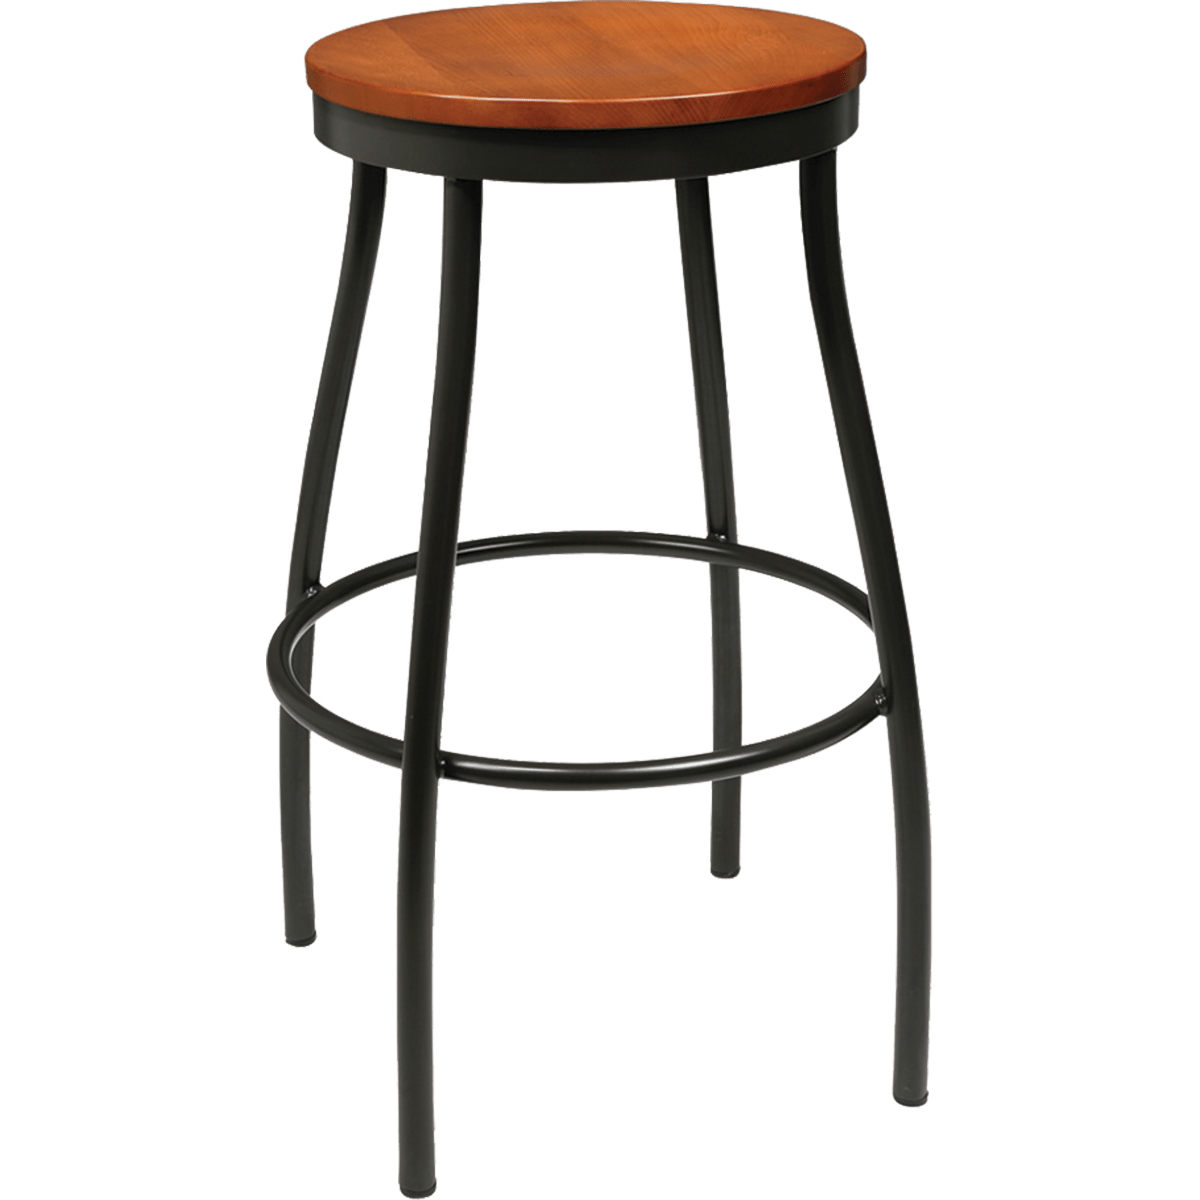 Wood And Metal Bar Stools Barstools Metal Rustic Wood Backless Stool